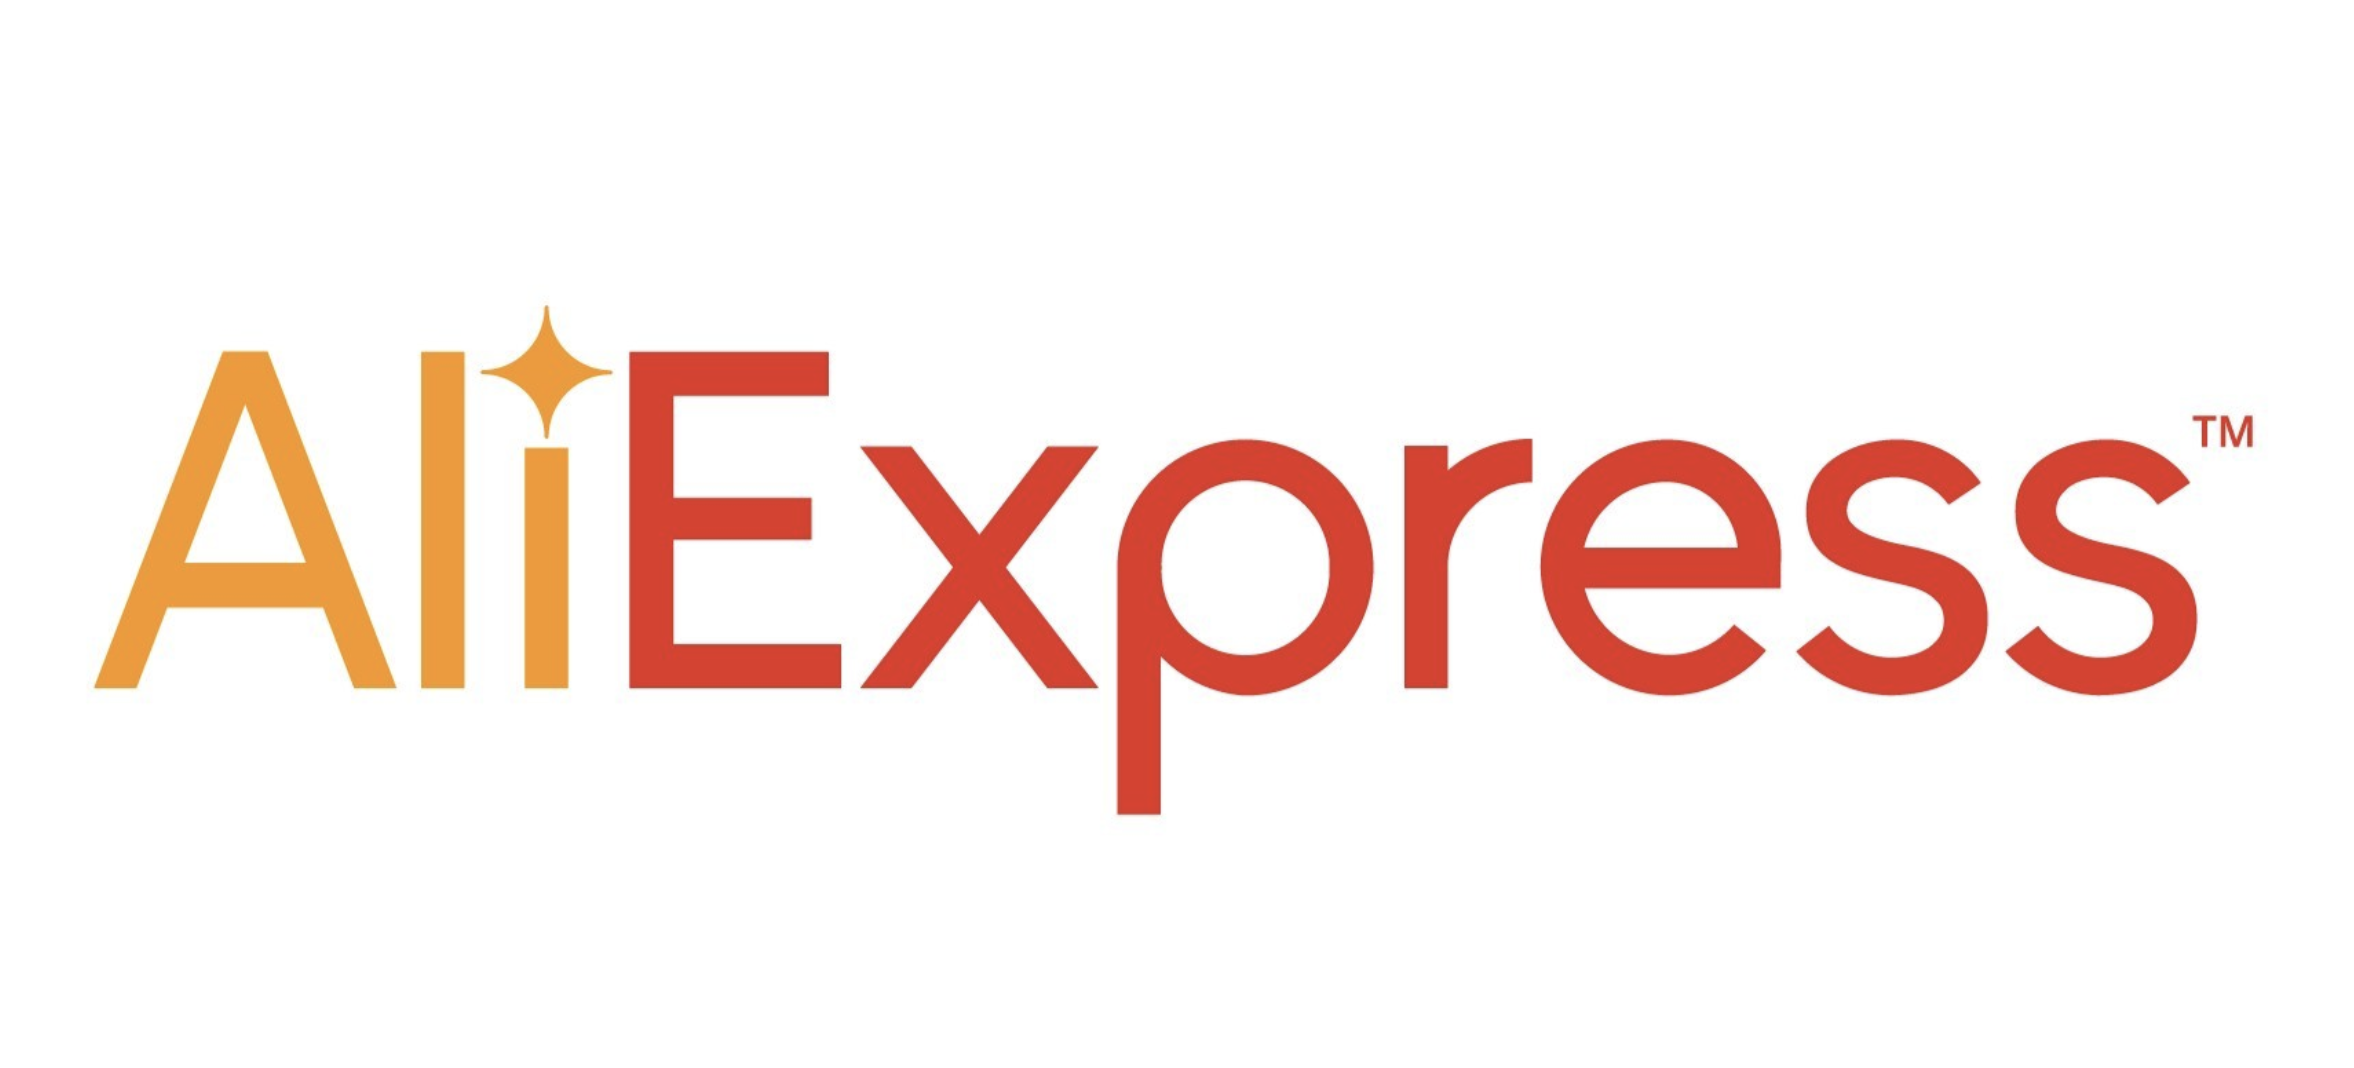 Exclusive Deals Save 20% OFF With Aliexpress Promo Code